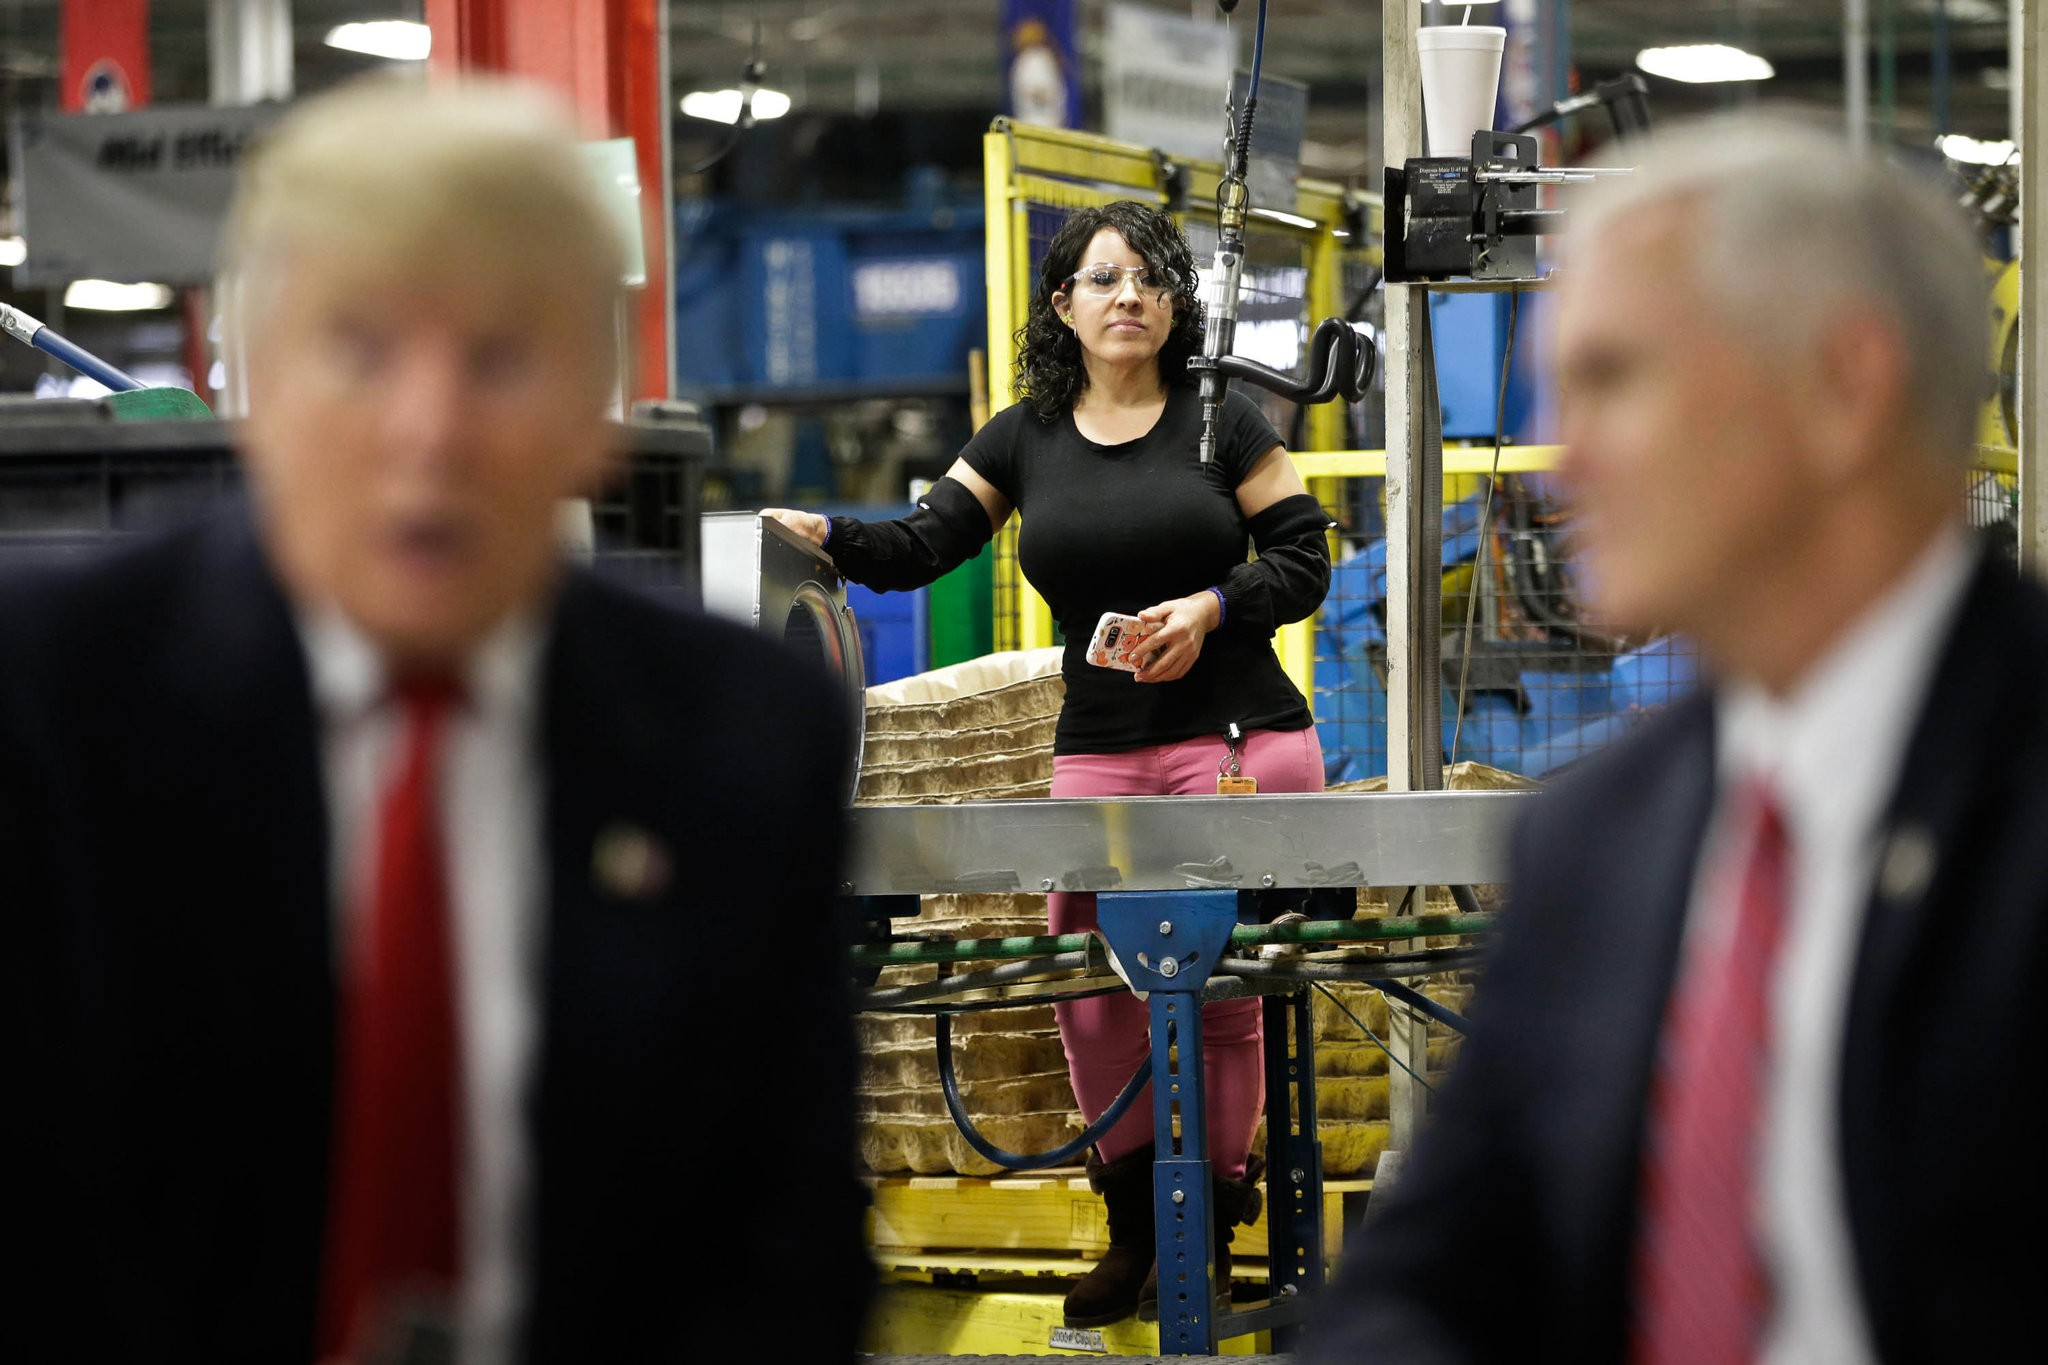 Donald J. Trump and Mike Pence visit Carrier's Indianapolis factory